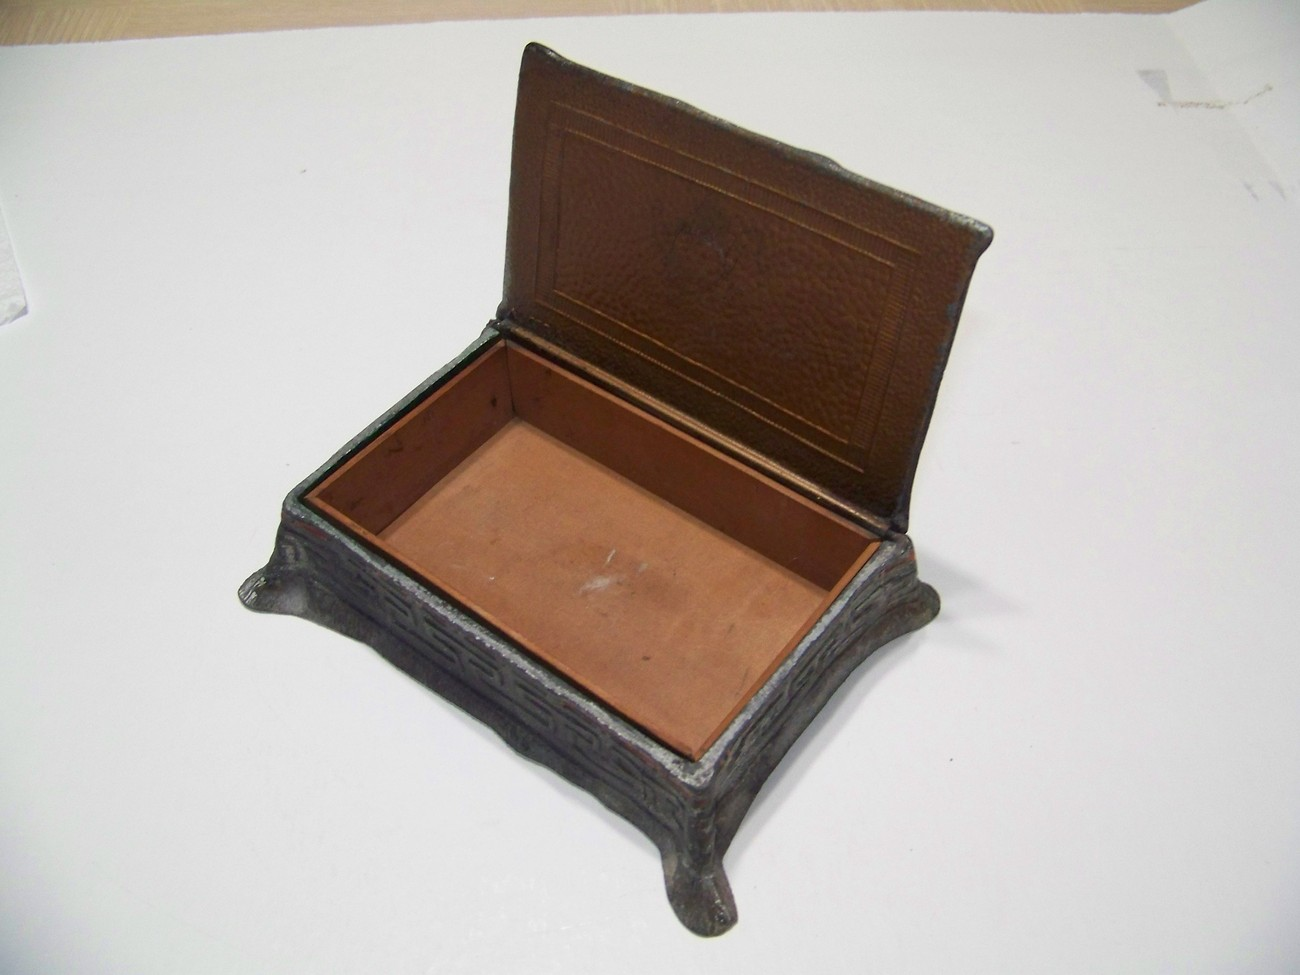 ANTIQUE BRONZE CIGARETTE BOX WITH NAKED MAIDEN ON TOP